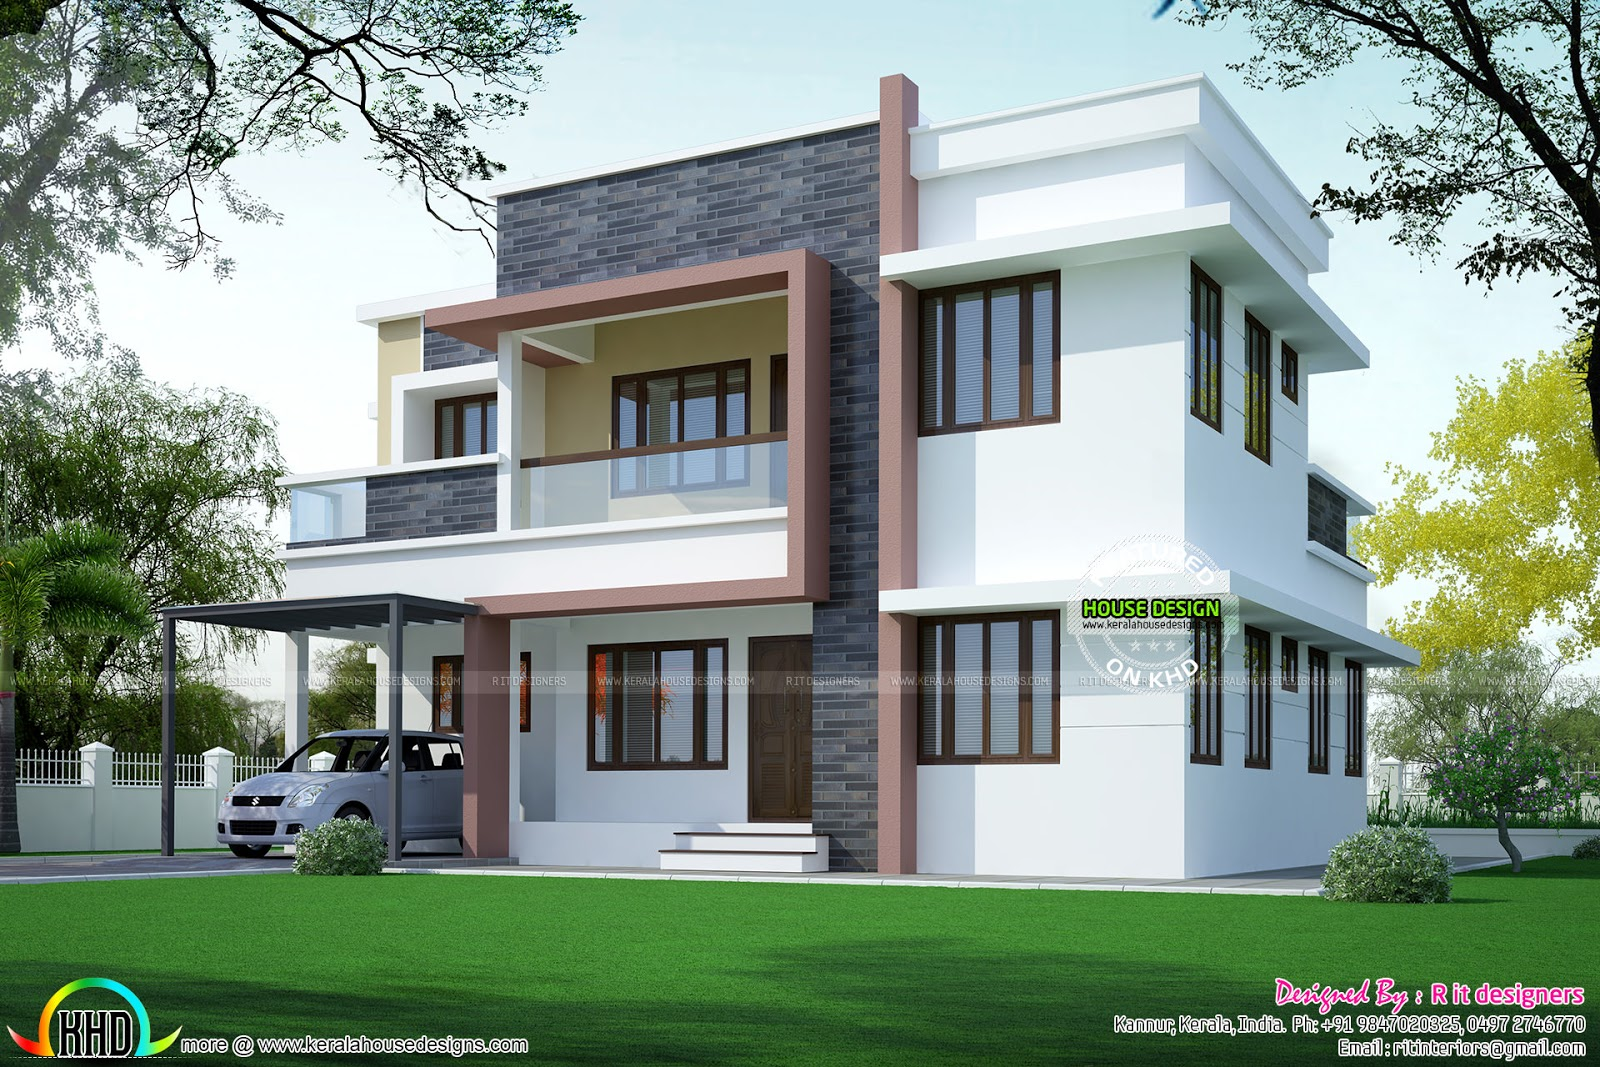 Simple home plan in modern style kerala home design and for Basic house design